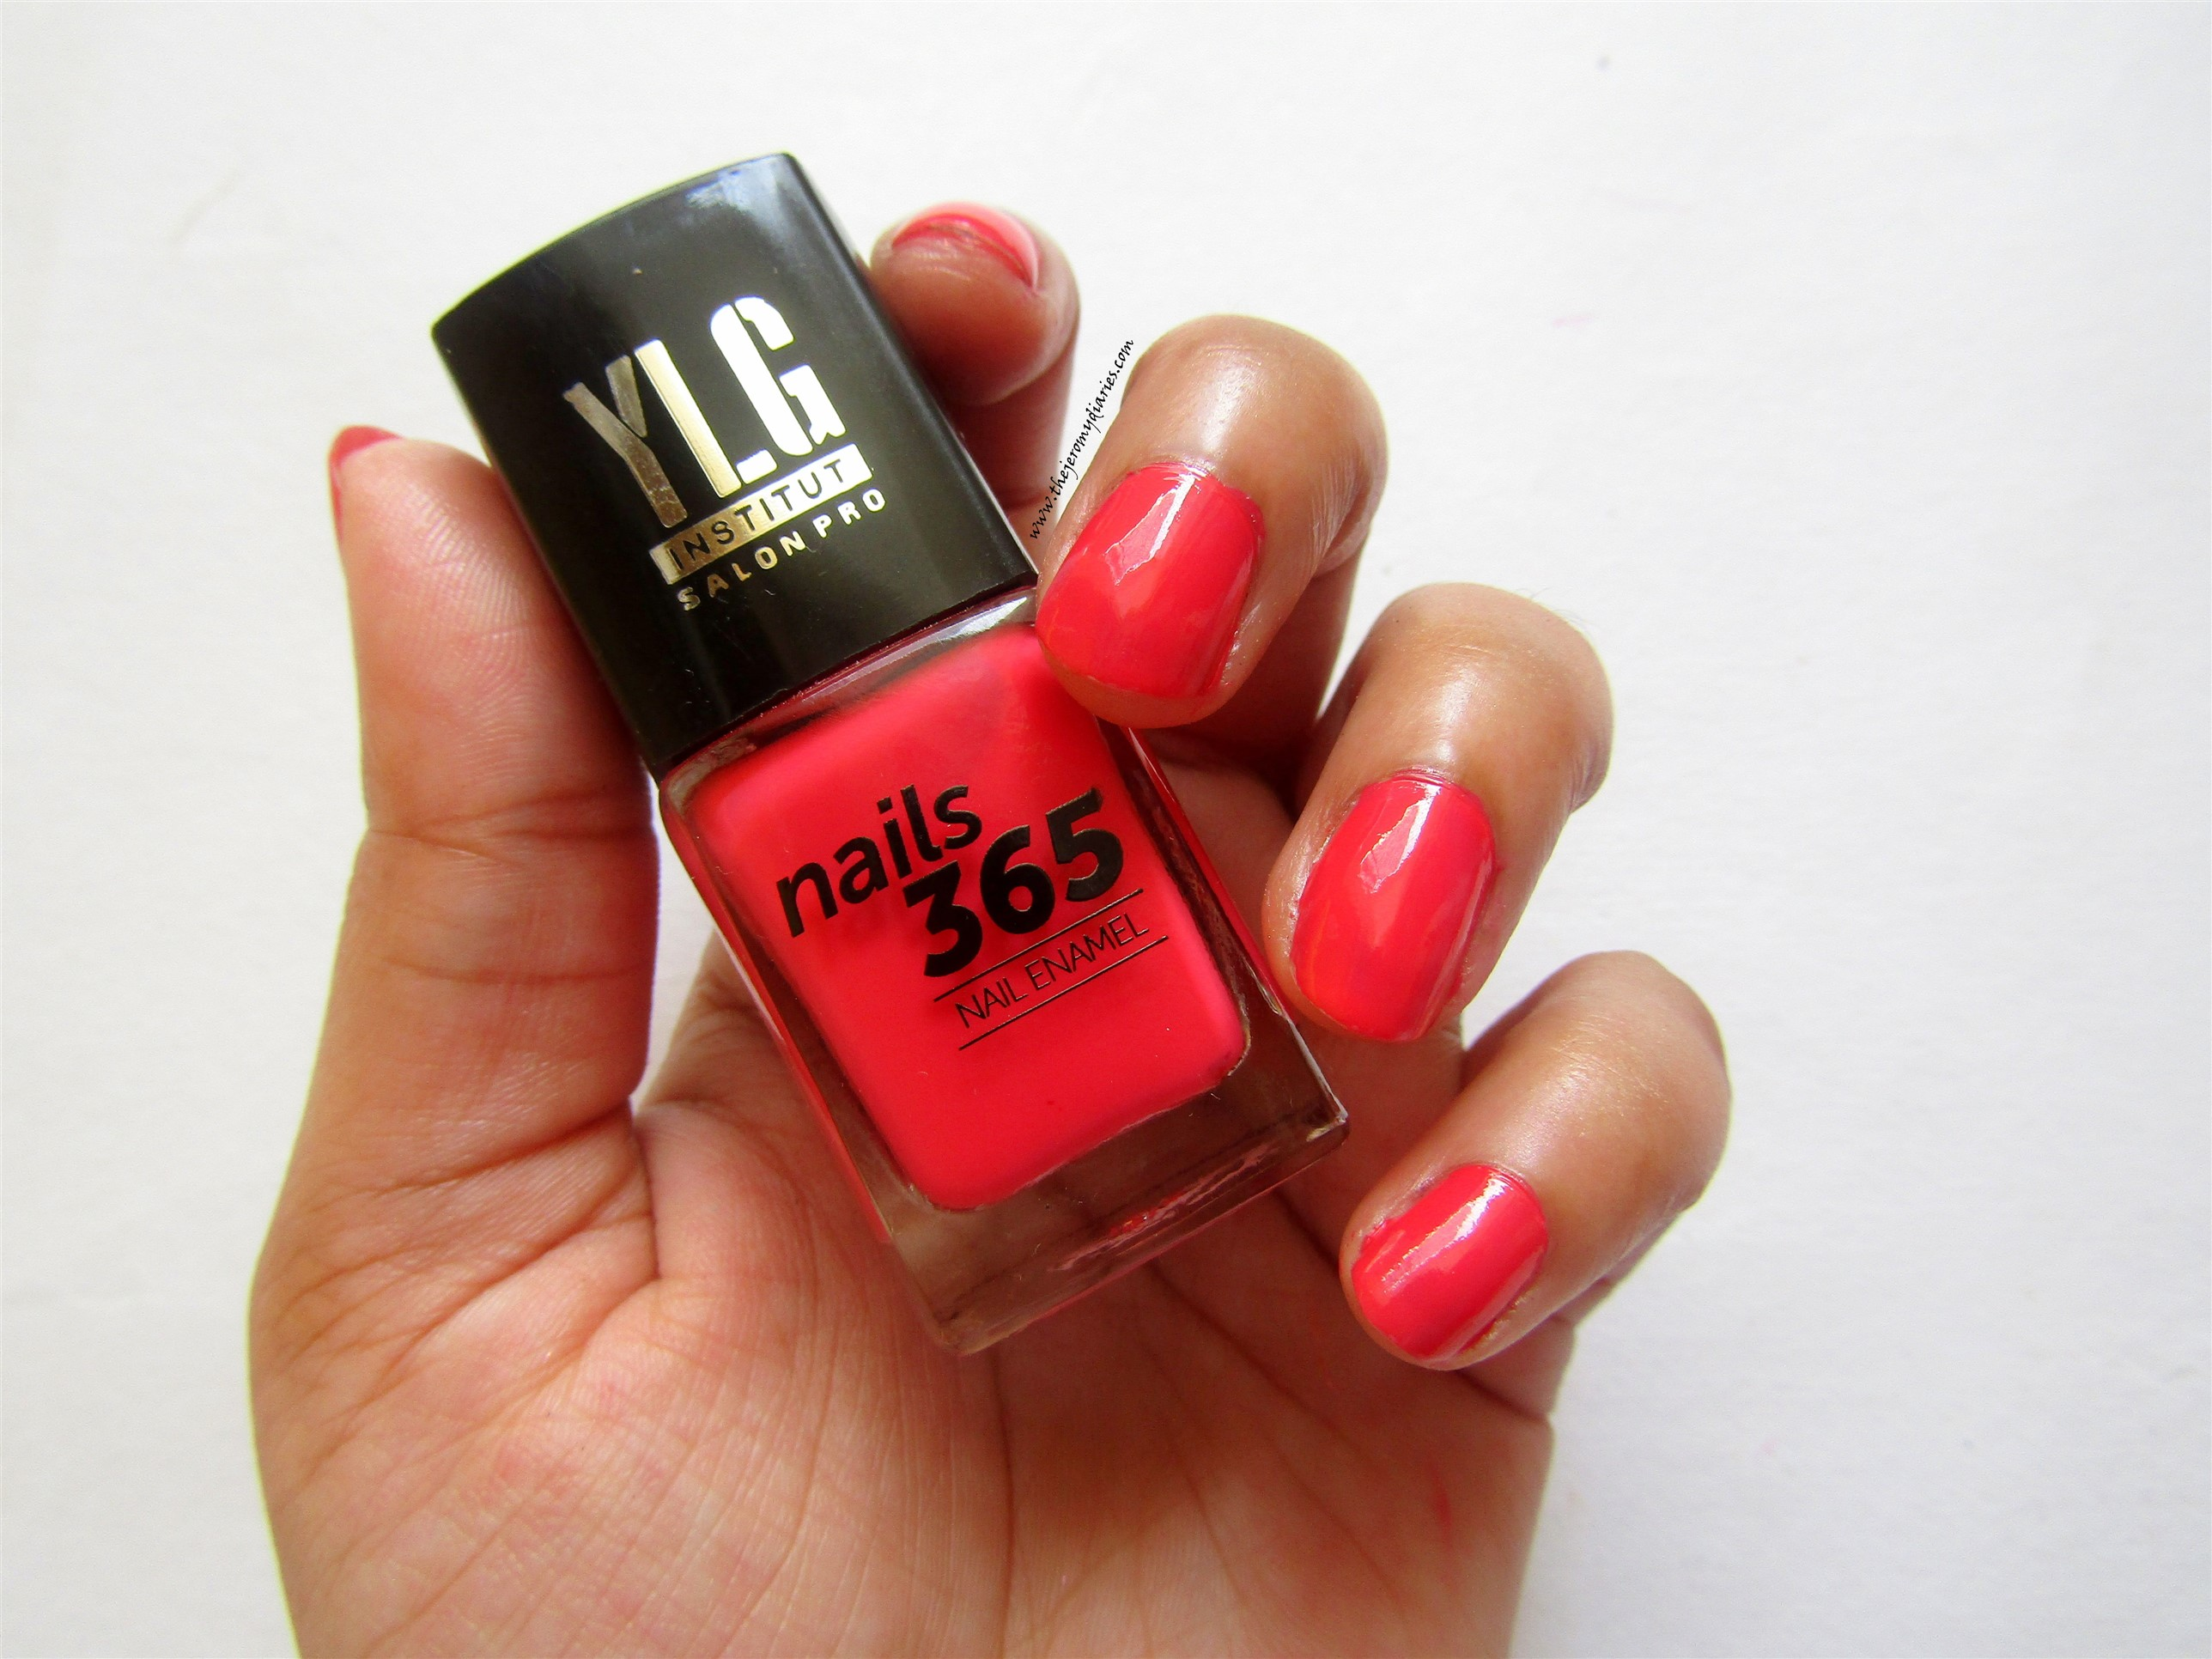 ylg nails 365 red shade nail paint swatches the jeromy diaries